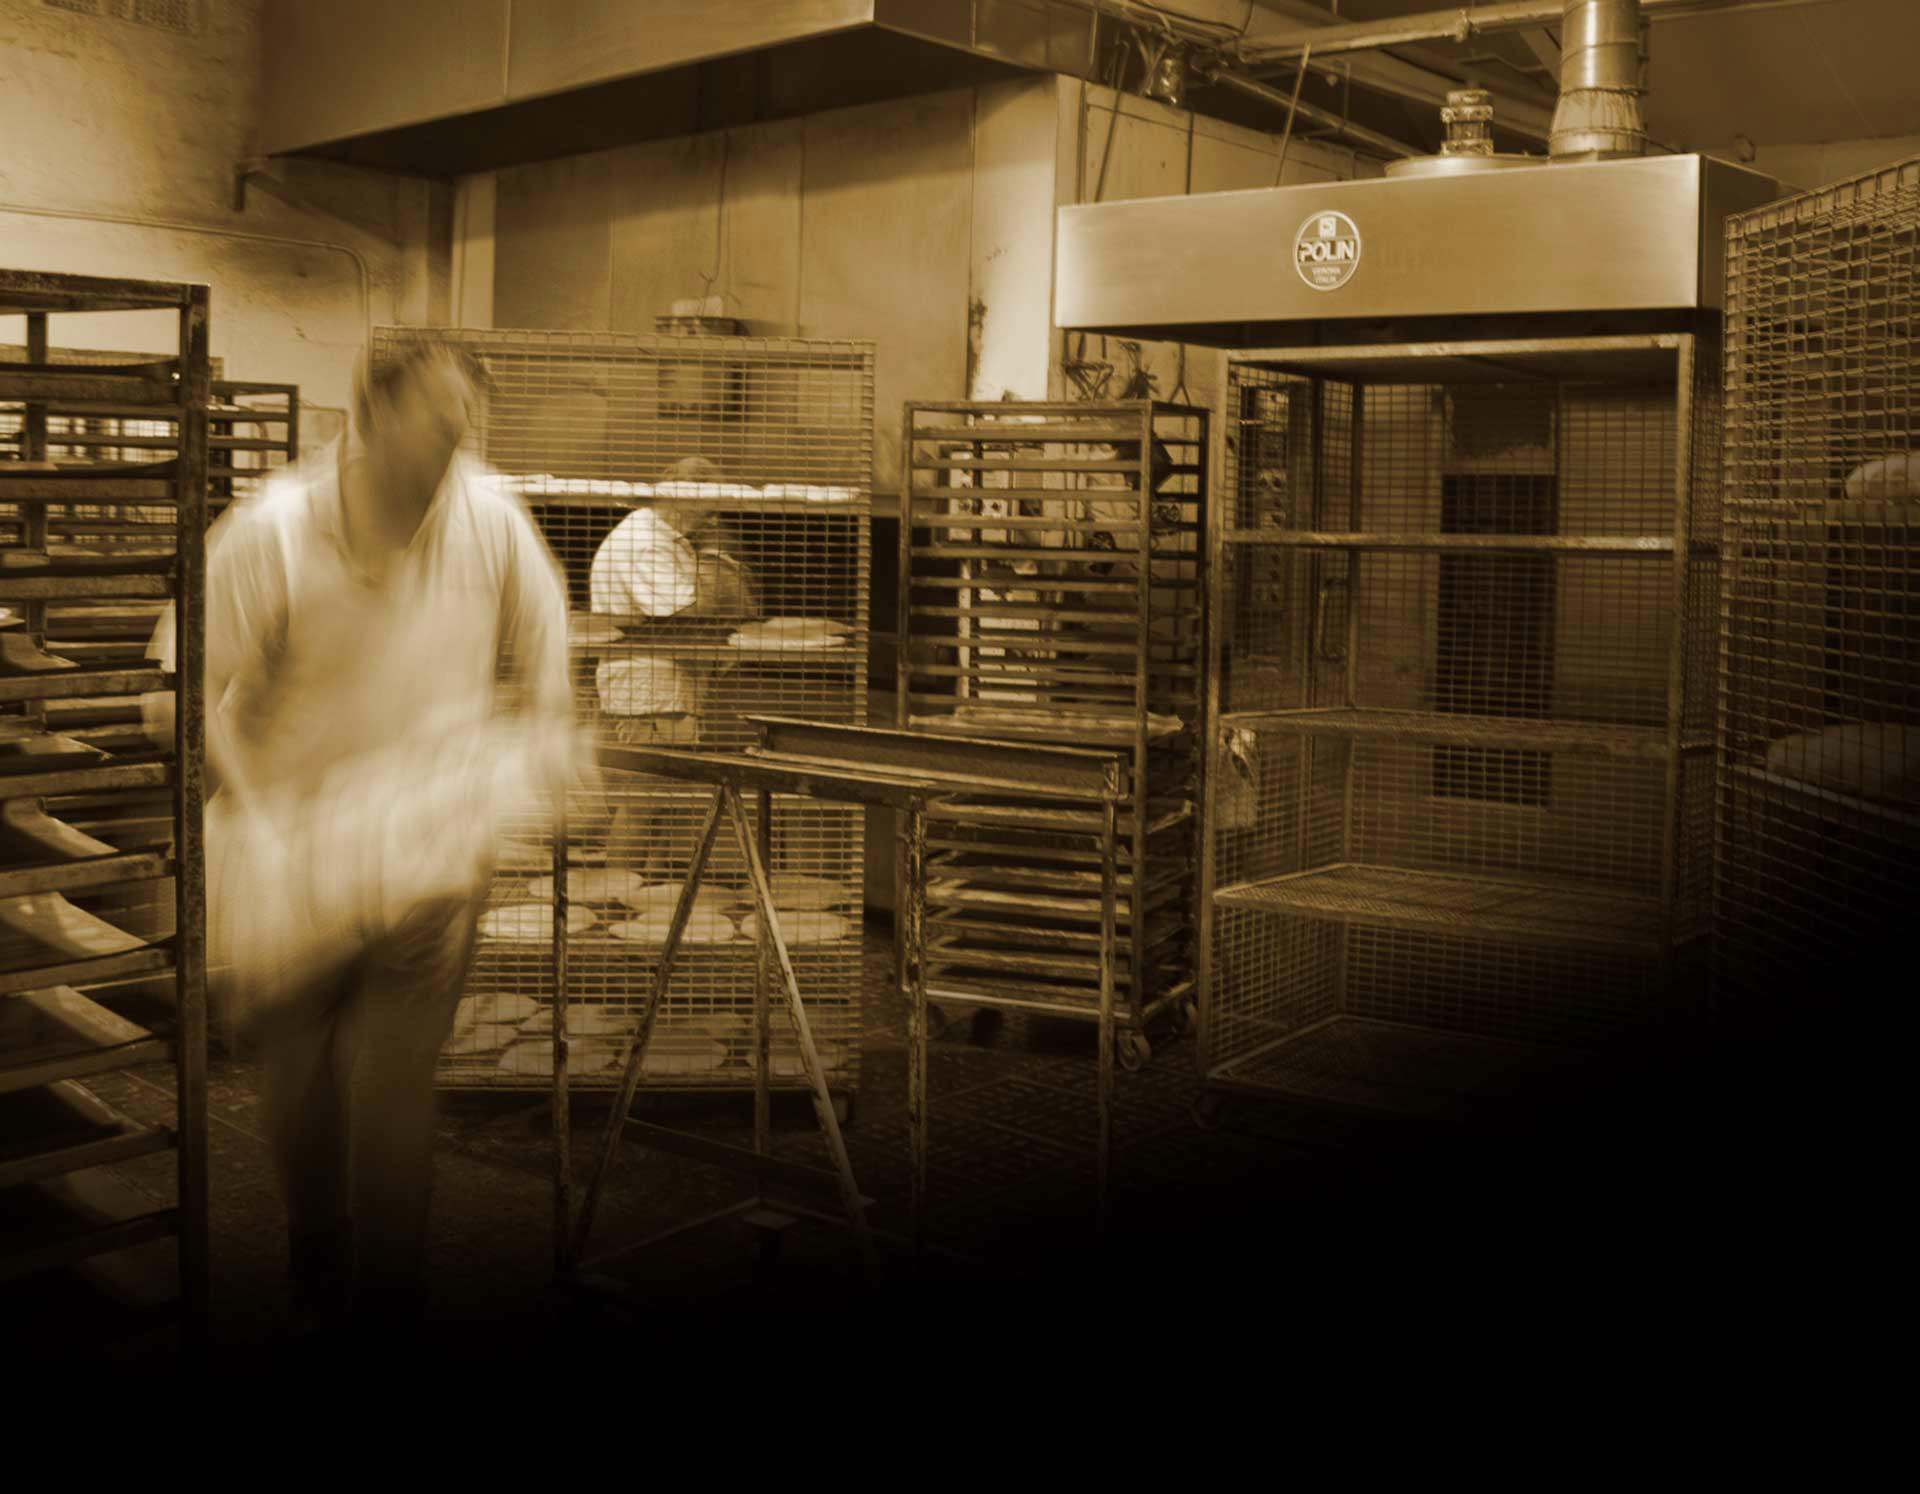 A baker moving some Vasese dough